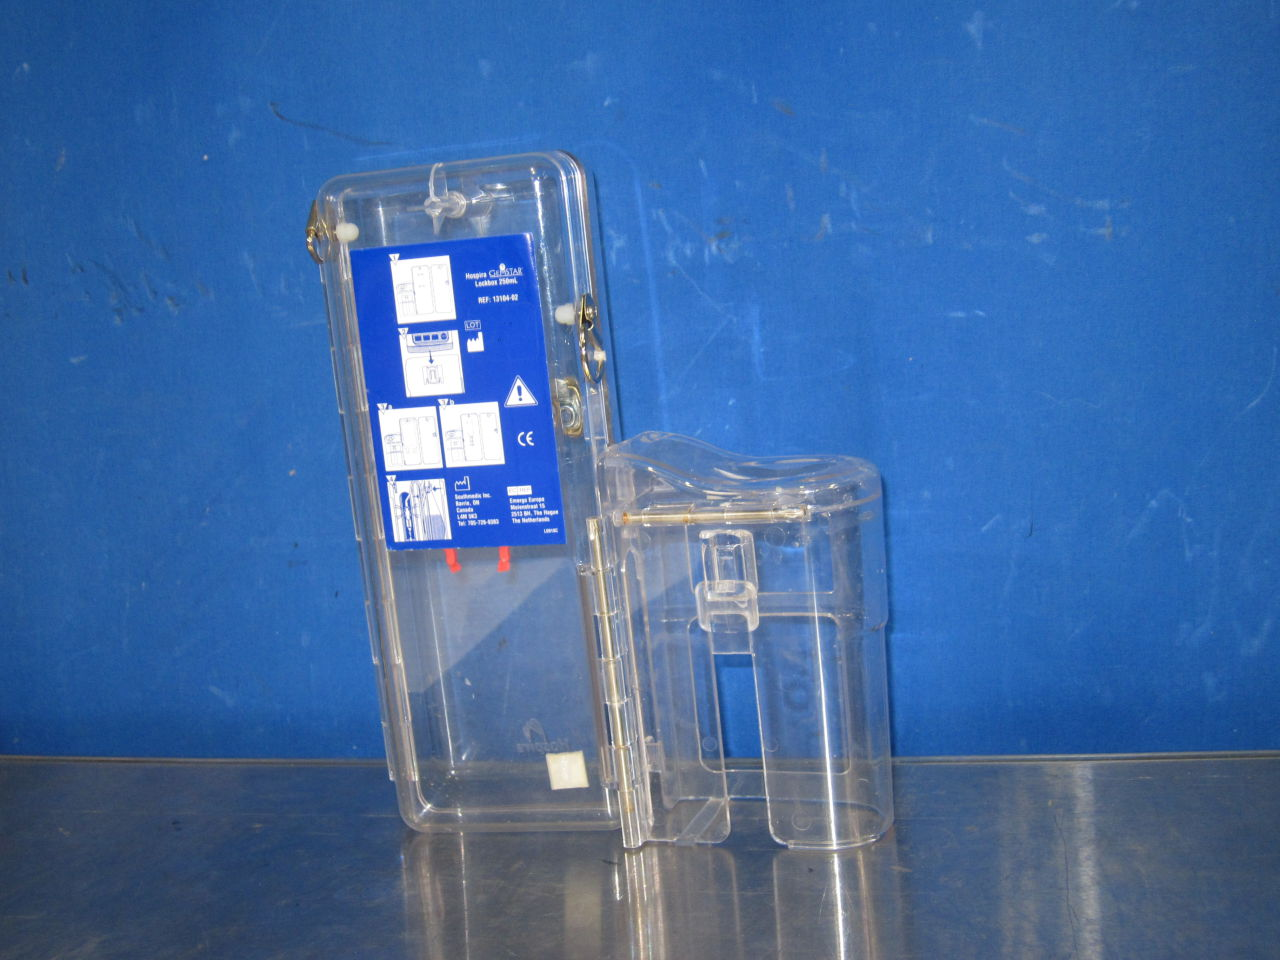 HOSPIRA Gemstar Lockbox Pump IV Infusion